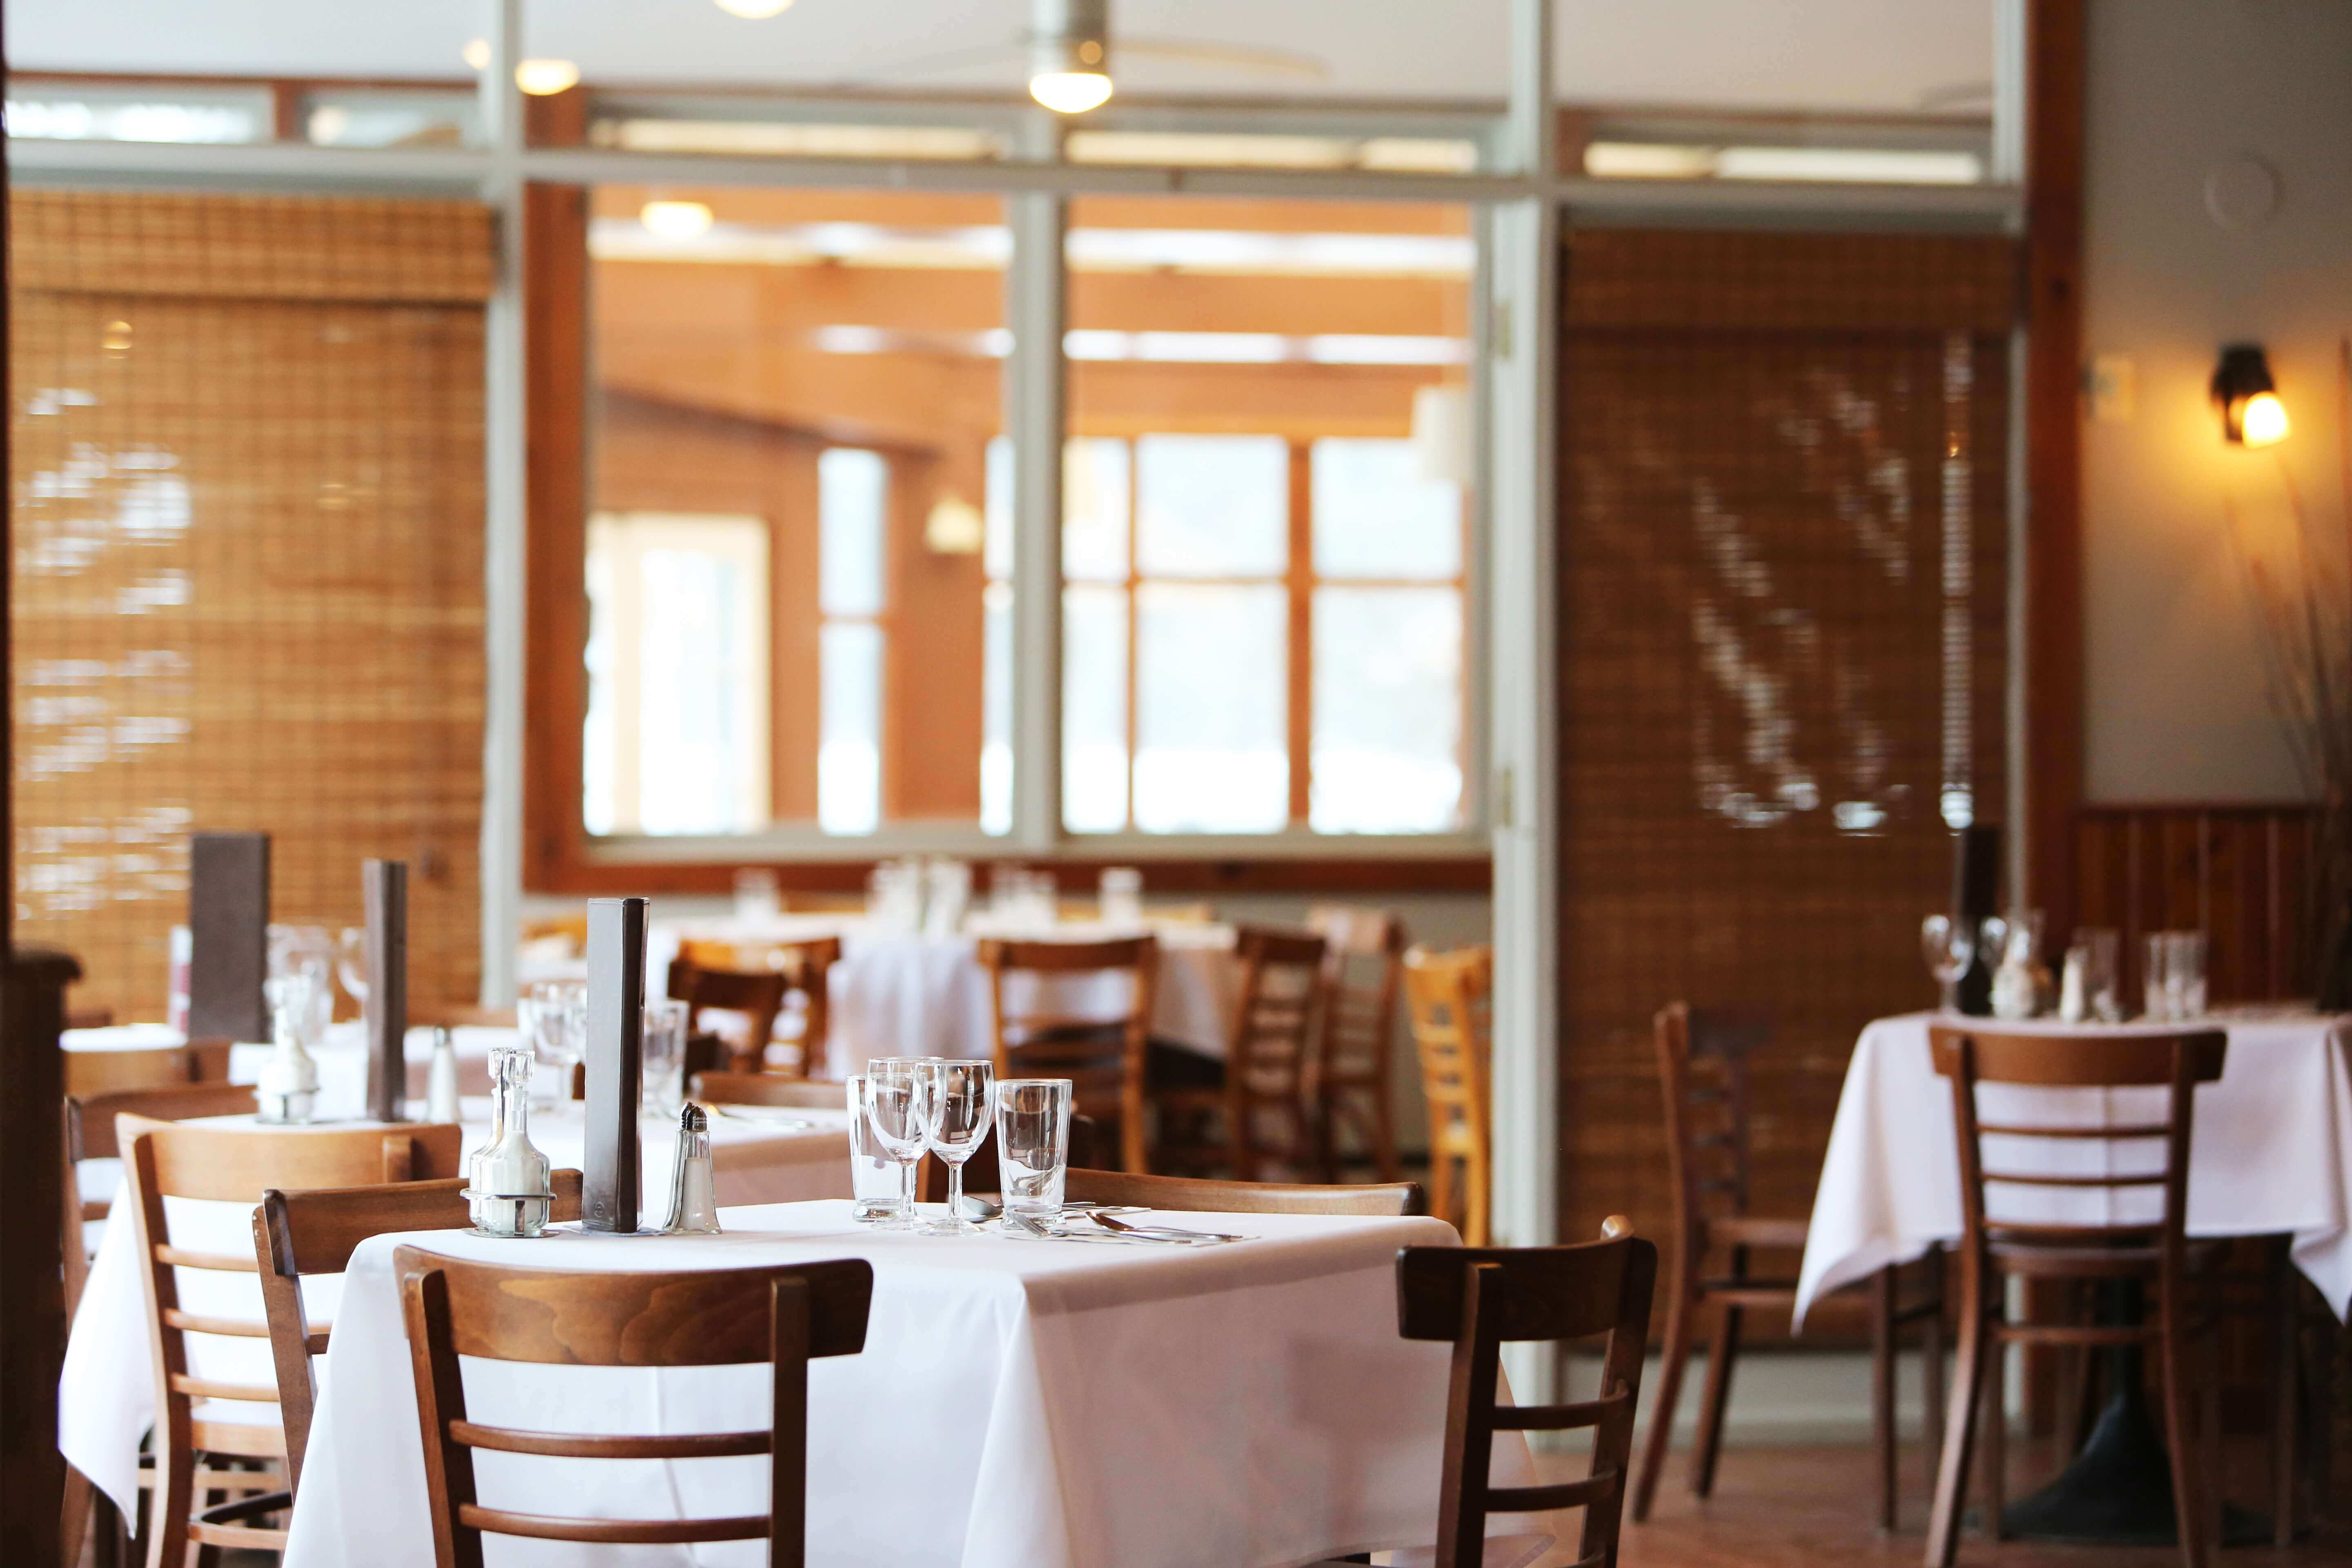 Customer Engagement A Comprehensive Guide For Table Service - Table service restaurants